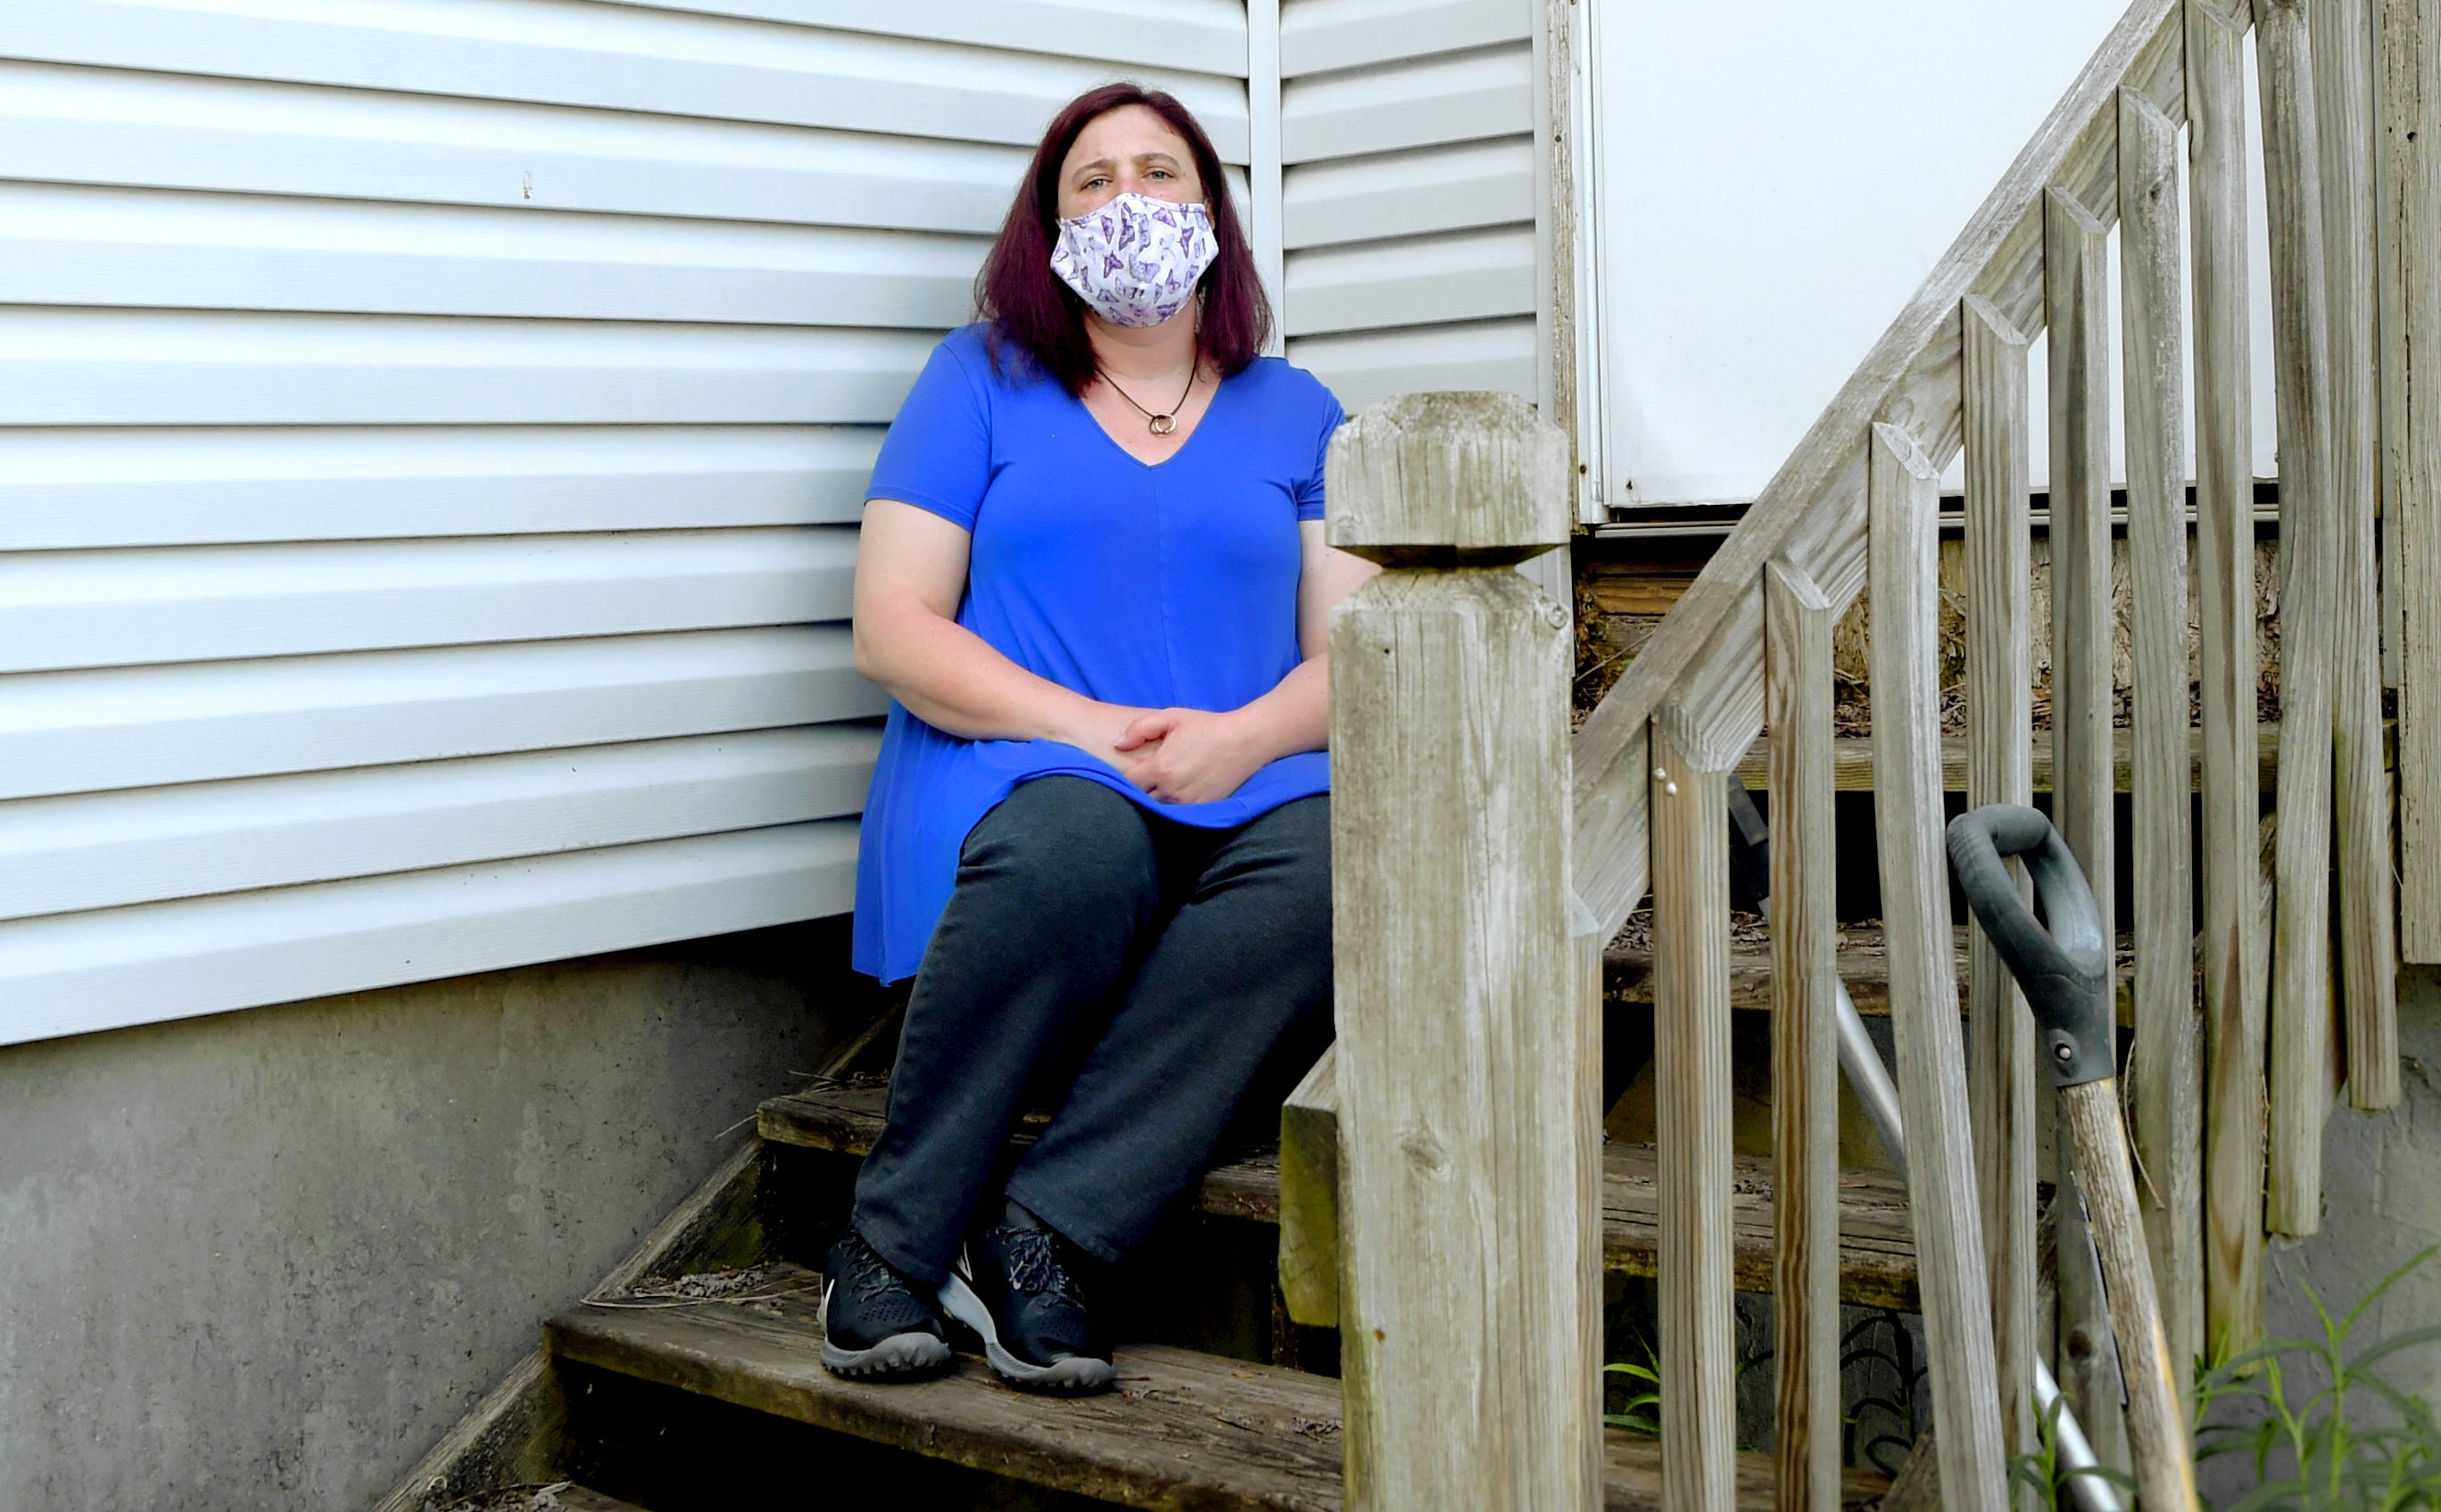 Millions of New Yorkers like Johnson City's Heather Picker qualified for unemployment as a result of the pandemic, but struggled to navigate an unresponsive system and waited months for their claims to be fulfilled.